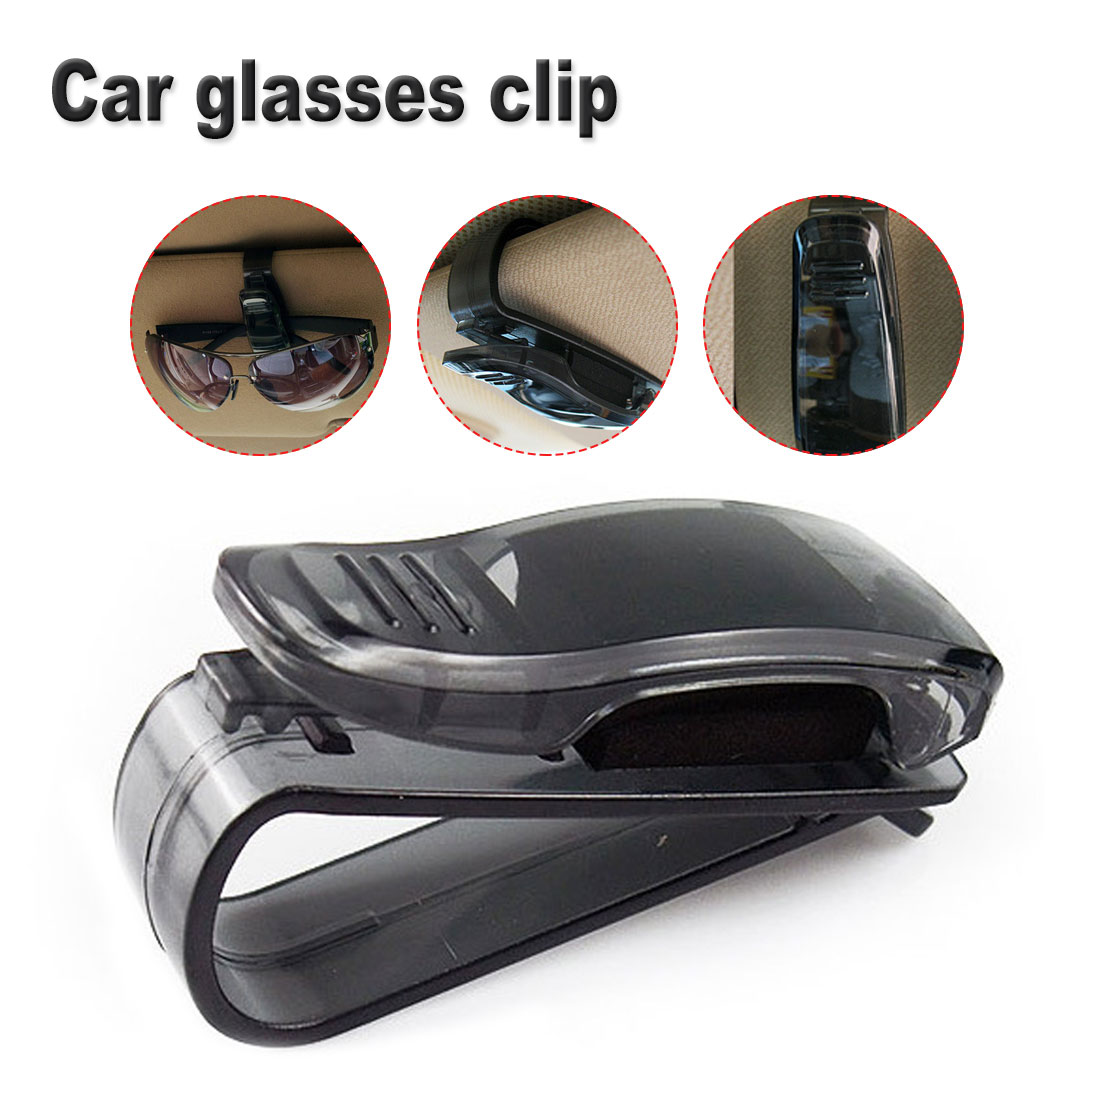 Practical Auto Fastener Auto Accessories ABS Car Vehicle Sun Visor Sunglasses Eyeglasses Glasses Ticket Holder Clip in Eyewear Accessories from Apparel Accessories